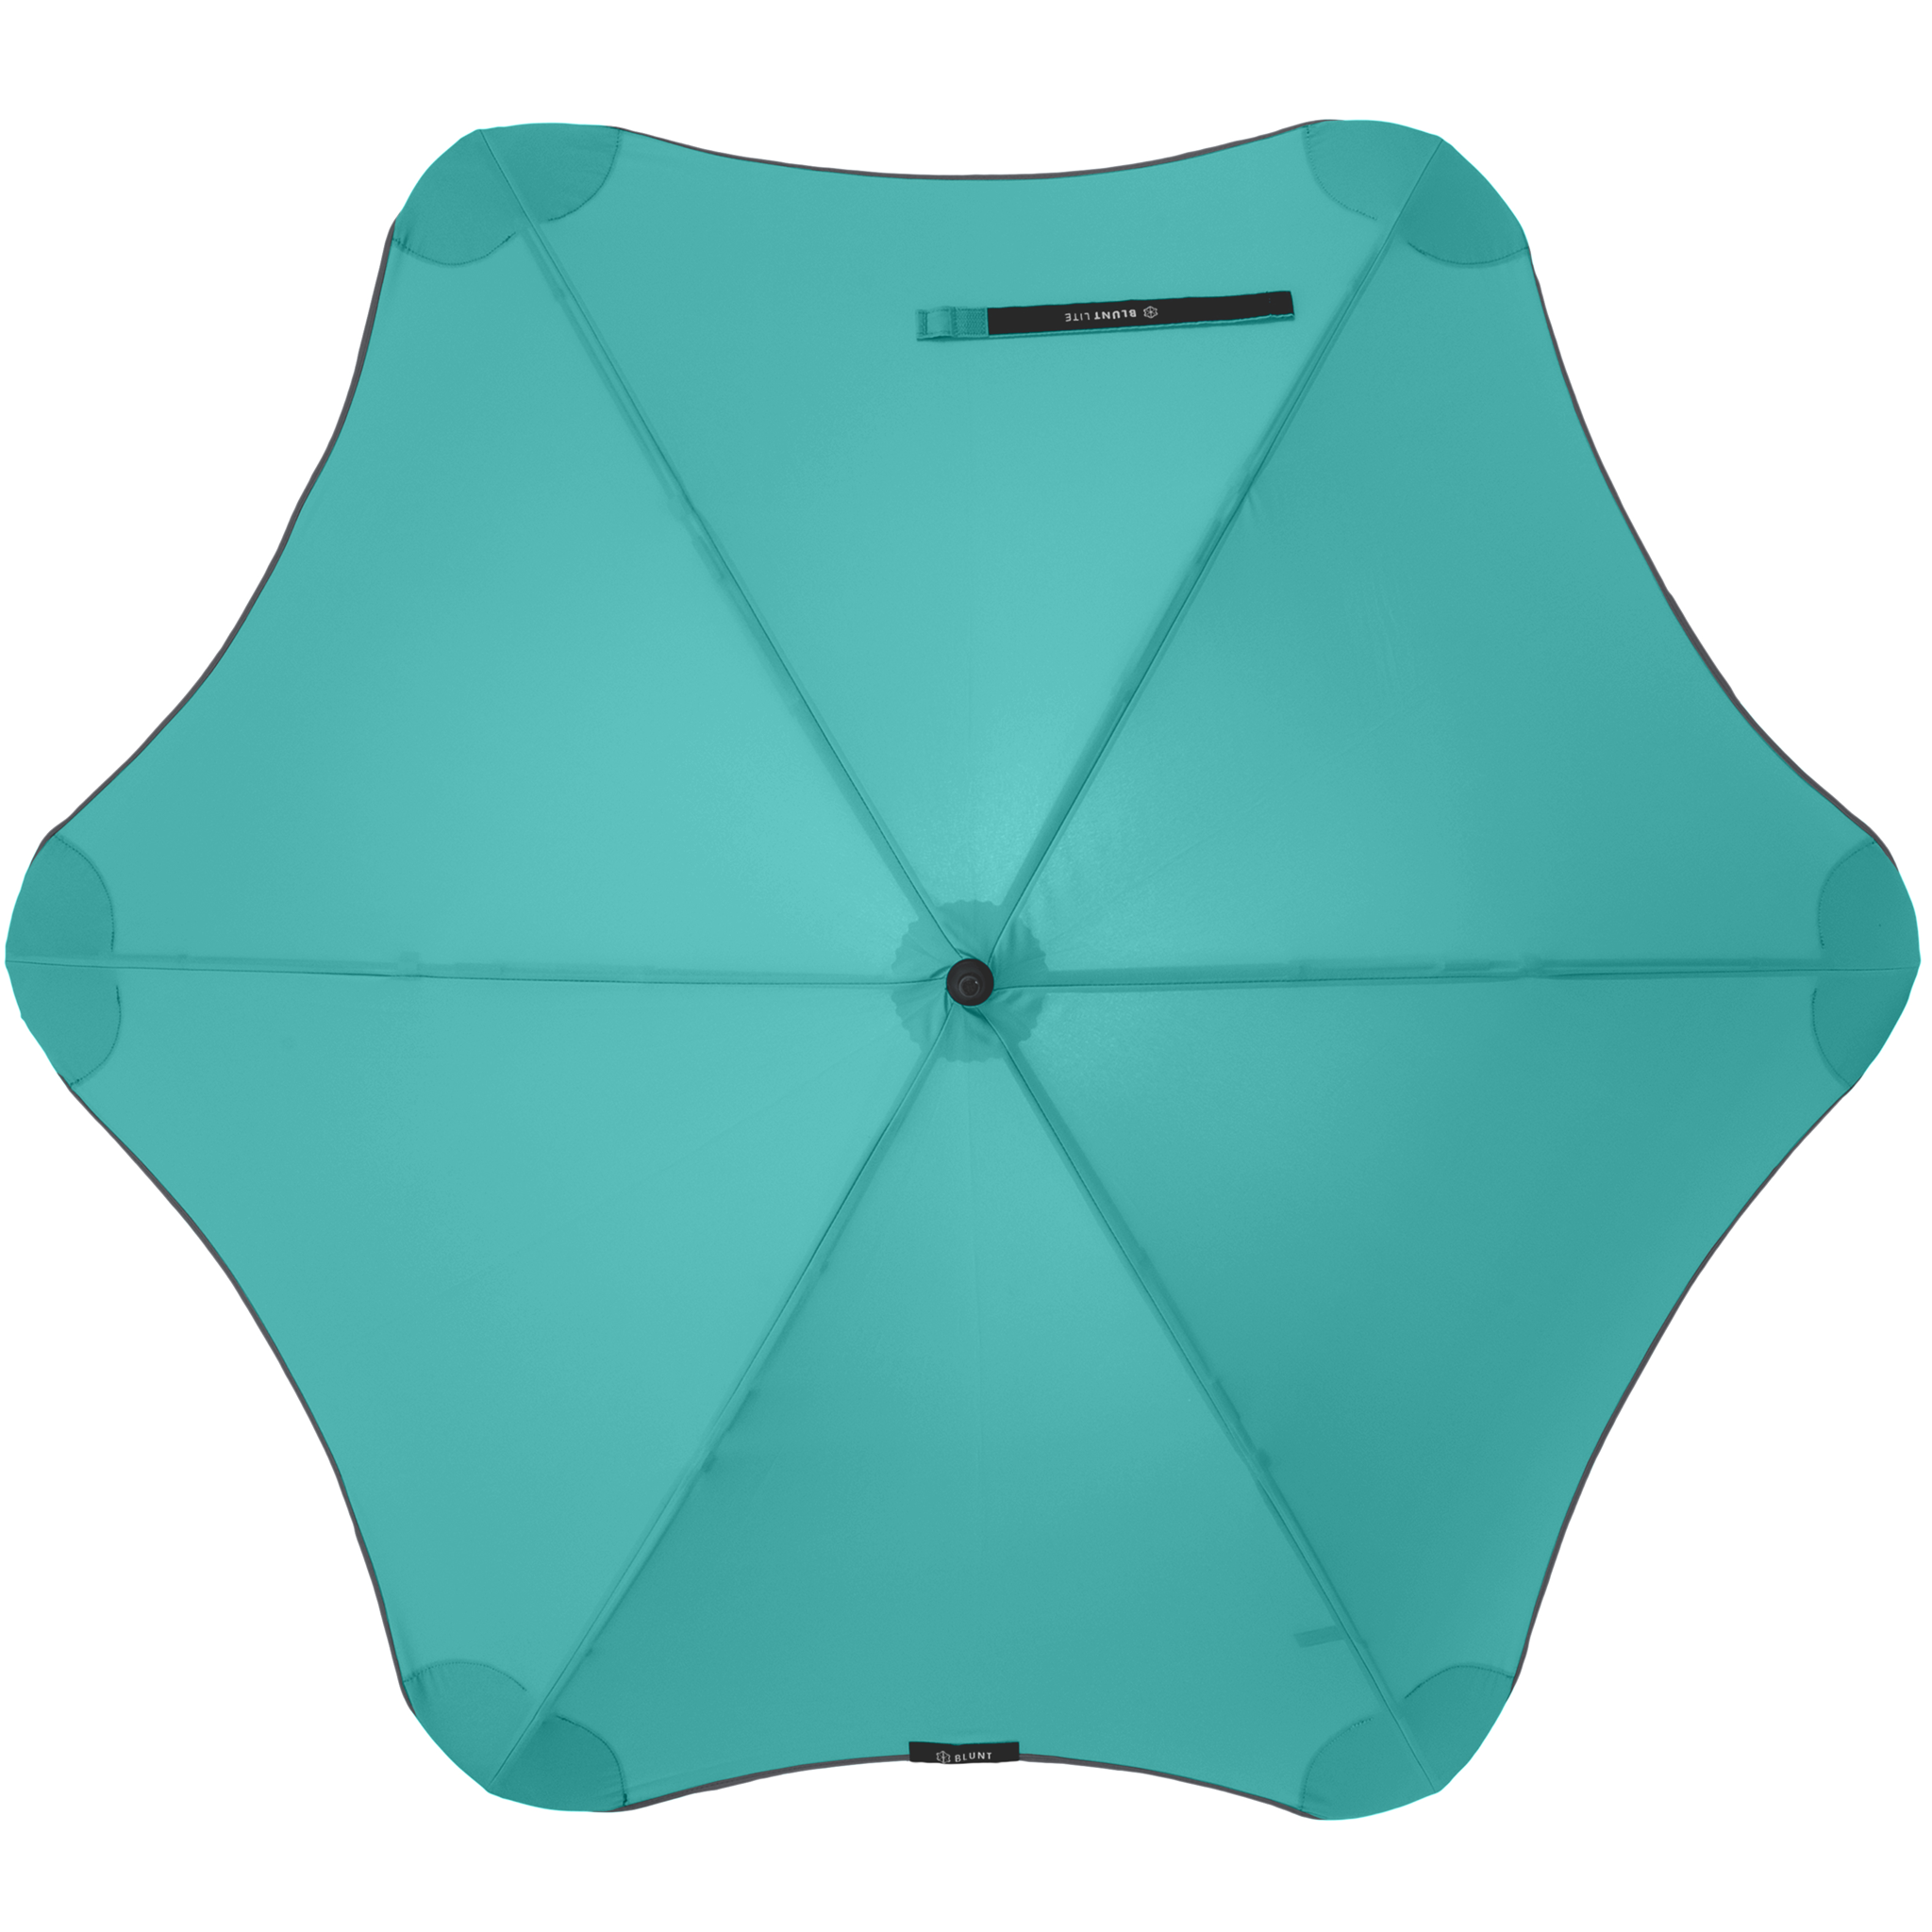 Blunt Umbrella Lite UV